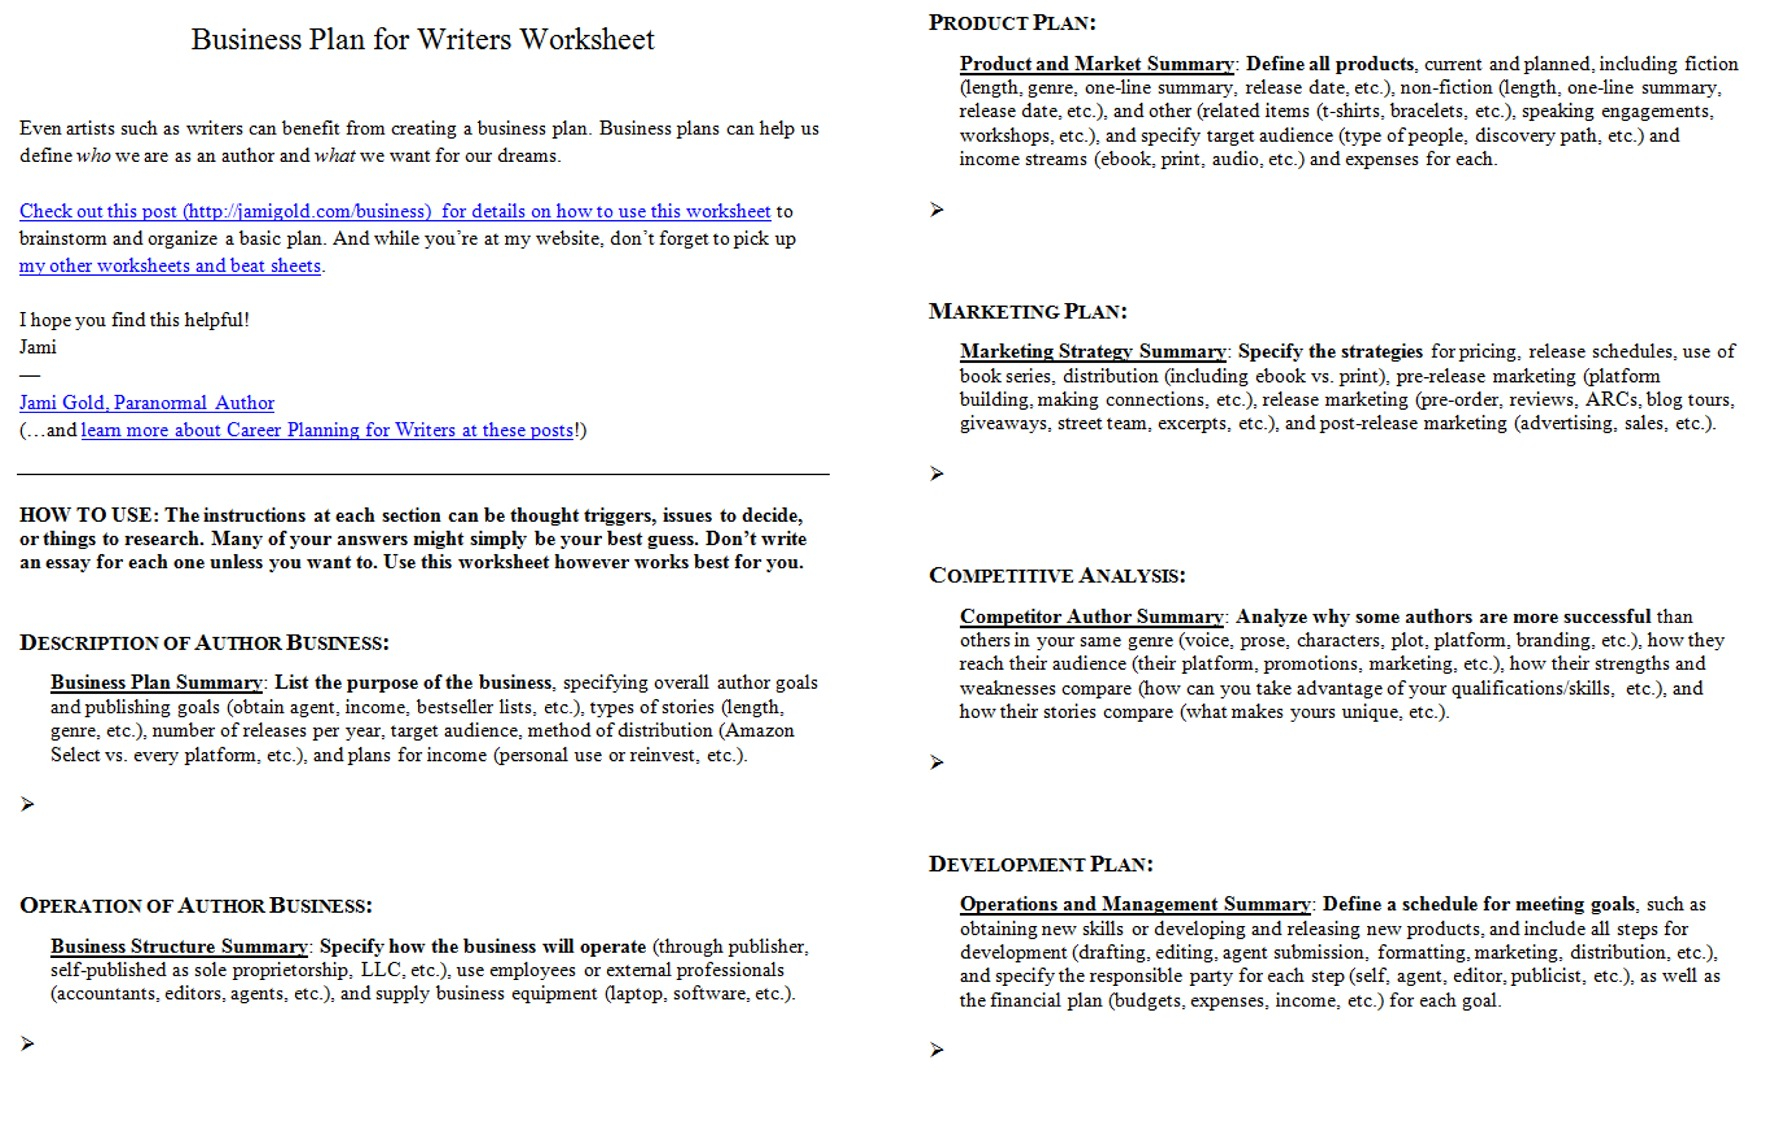 Proatmealus  Winning Worksheets For Writers  Jami Gold Paranormal Author With Gorgeous Screen Shot Of Both Pages Of The Business Plan For Writers Worksheet With Extraordinary Por Para Worksheet Also Career Goals Worksheet In Addition Turning Decimals Into Fractions Worksheet And Place Value Worksheets Nd Grade Free As Well As Algebraic Worksheets Additionally Cryptography Worksheet From Jamigoldcom With Proatmealus  Gorgeous Worksheets For Writers  Jami Gold Paranormal Author With Extraordinary Screen Shot Of Both Pages Of The Business Plan For Writers Worksheet And Winning Por Para Worksheet Also Career Goals Worksheet In Addition Turning Decimals Into Fractions Worksheet From Jamigoldcom